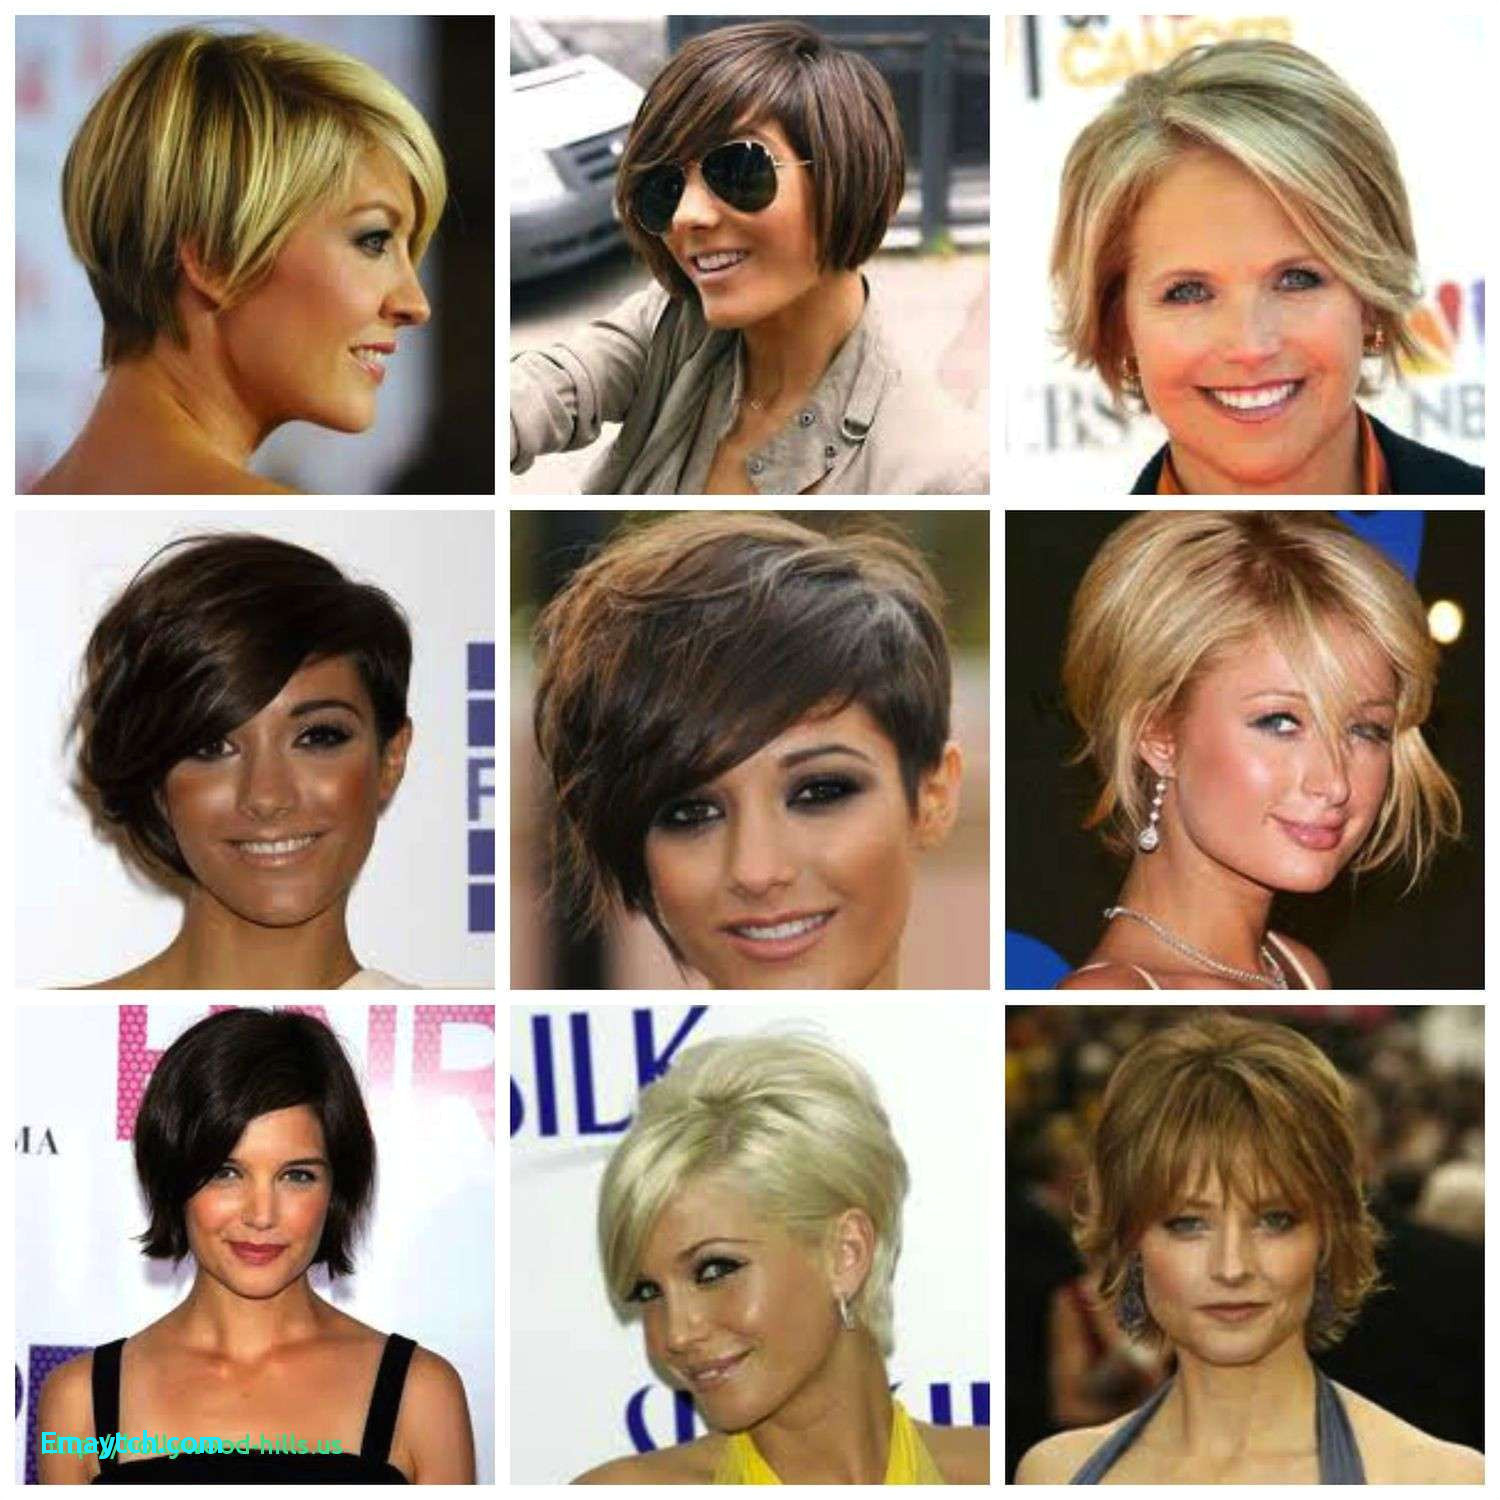 Easy Hairstyles Over 40 Elegant New Hair Styles Luxury I Pinimg 1200x 0d 60 8a 0d608a58a4bb3ed3b